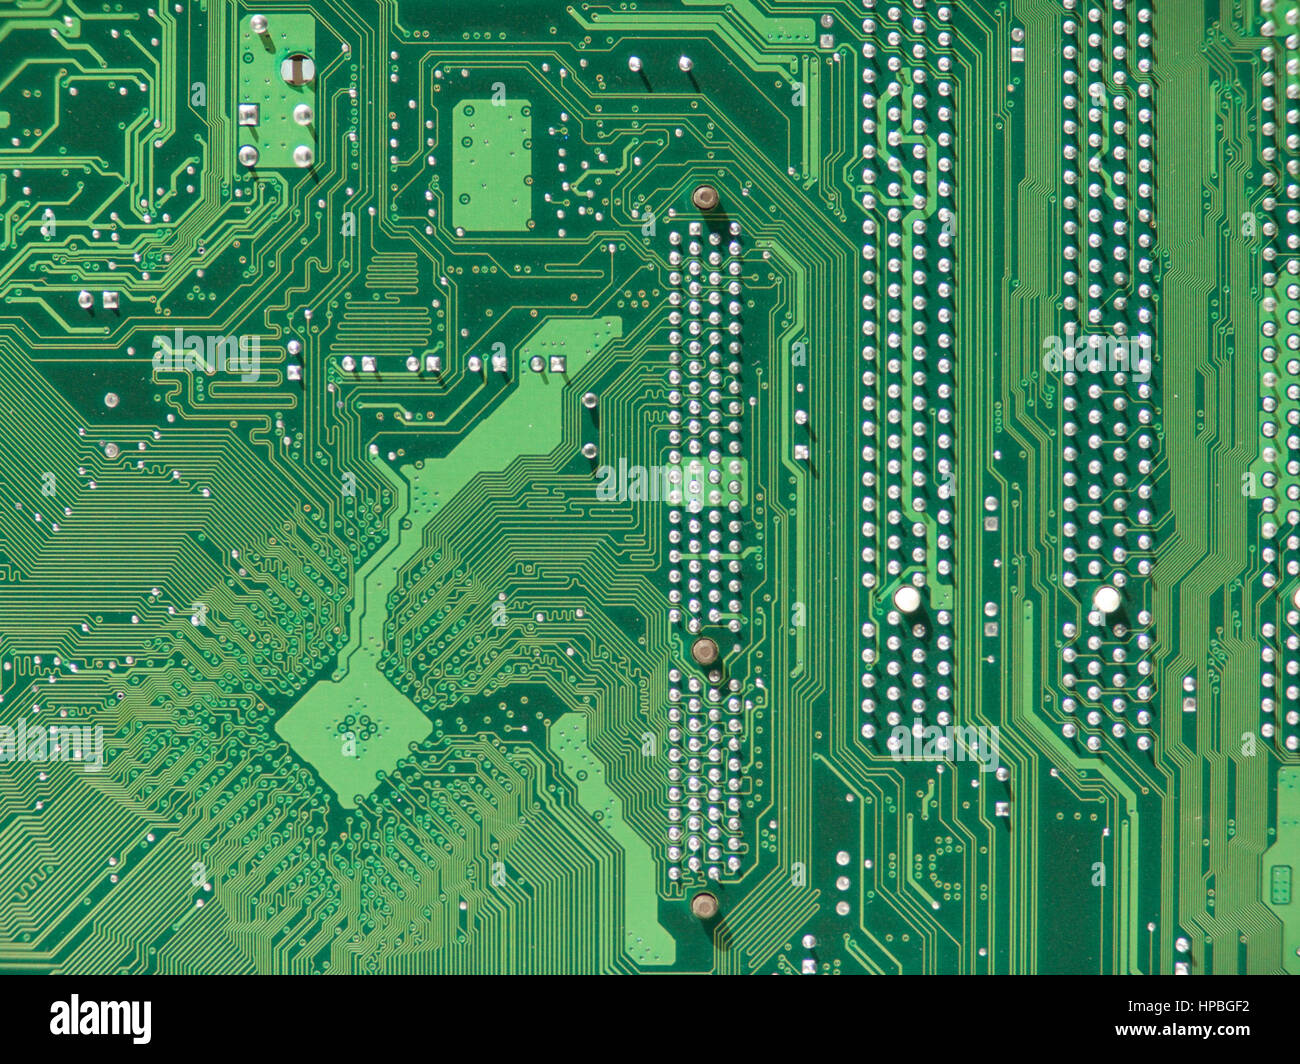 Mainboard for a personal computer. An electronic device for storing and processing data. - Stock Image